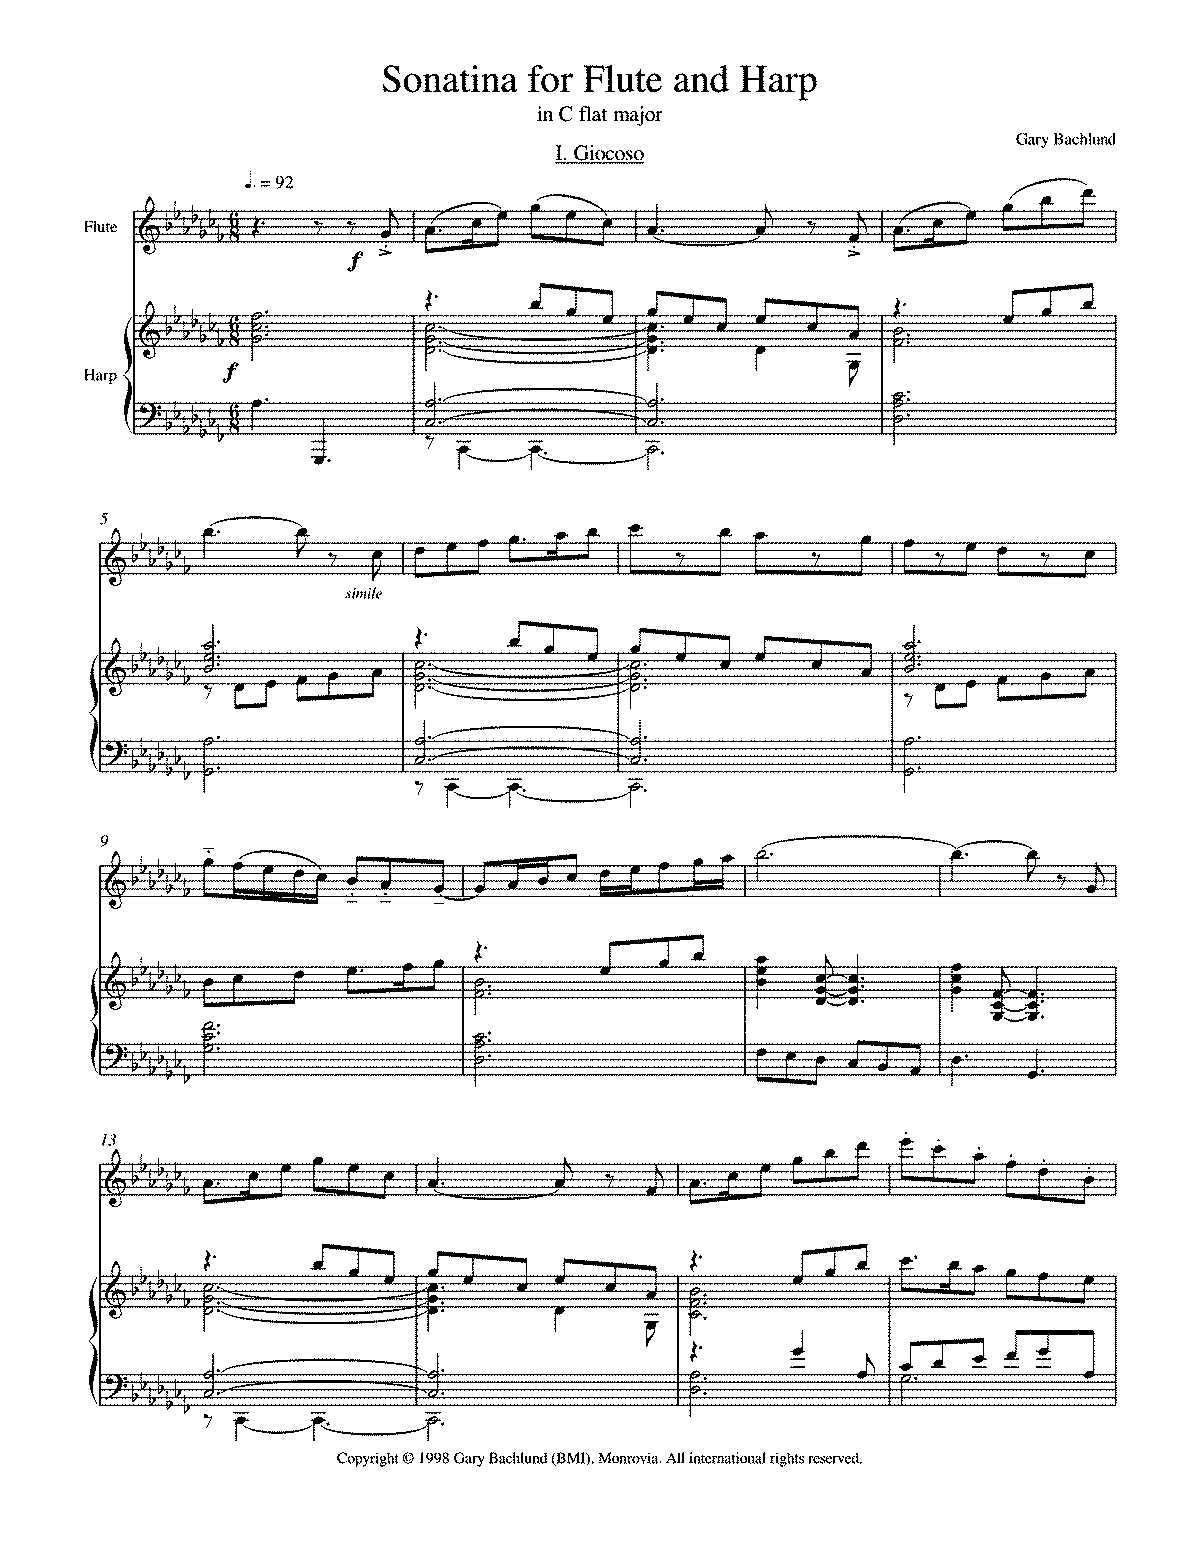 PMLP518050-Sonata for Flute and Harp in C flat major.pdf